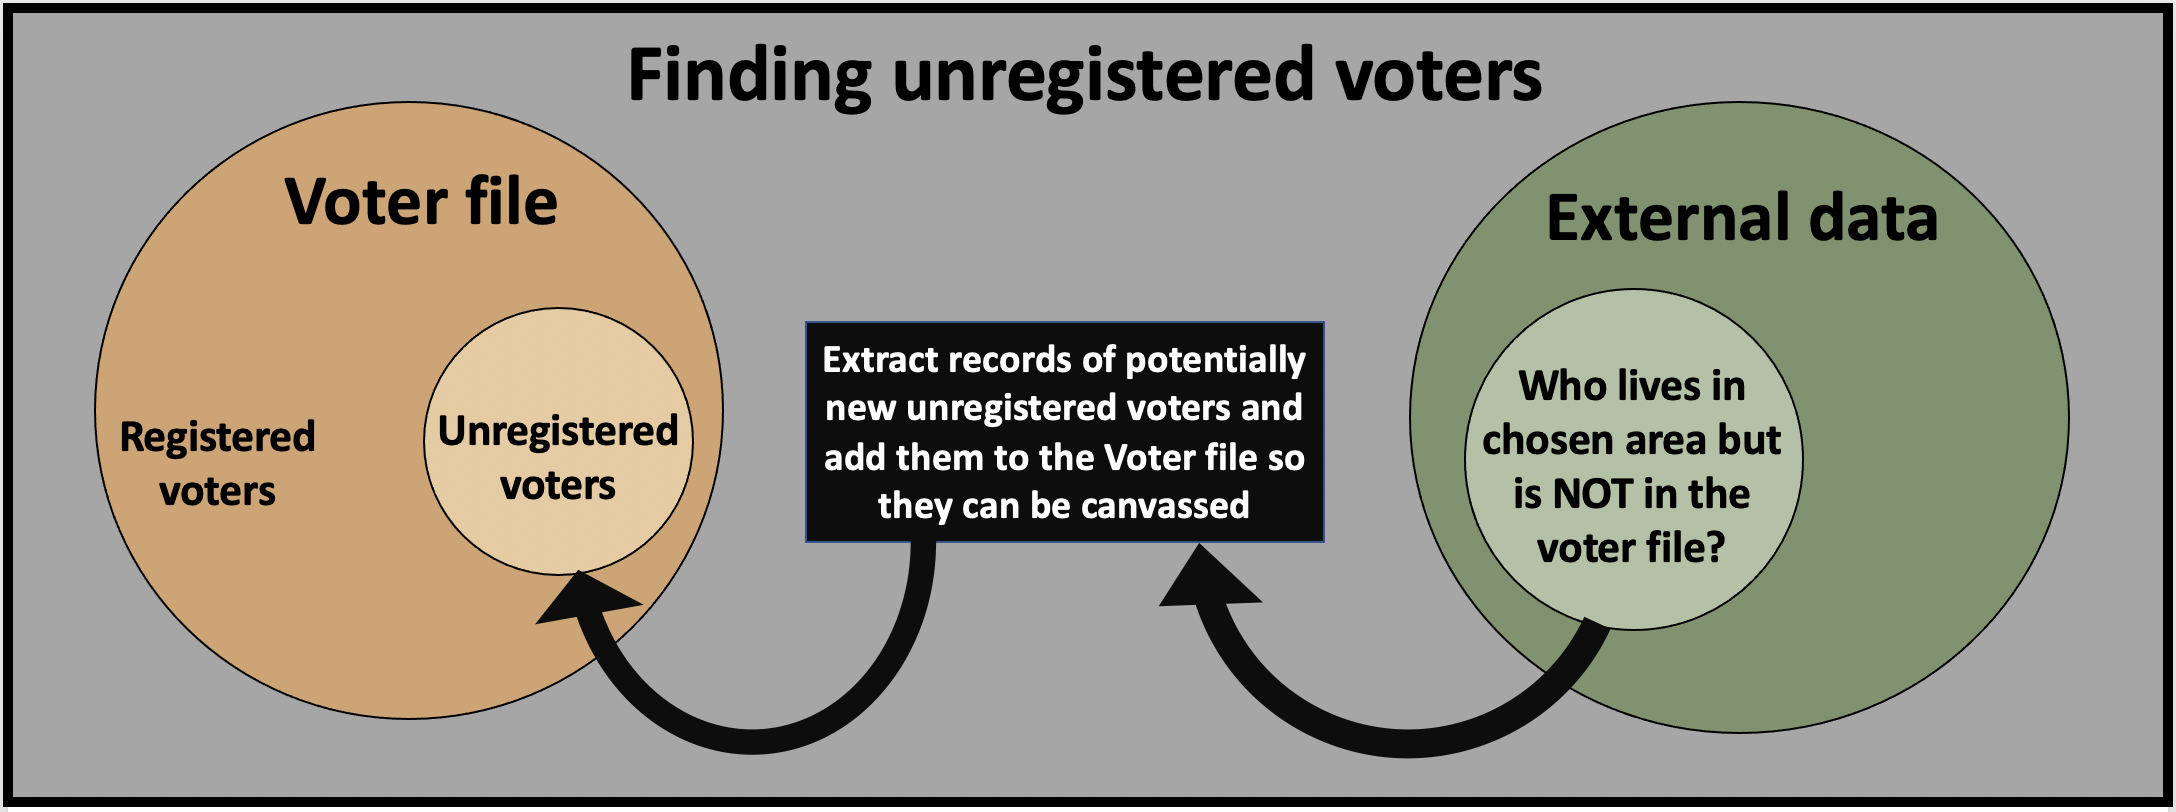 Use external data sources to find unregistered voter who may not be in the voter file.